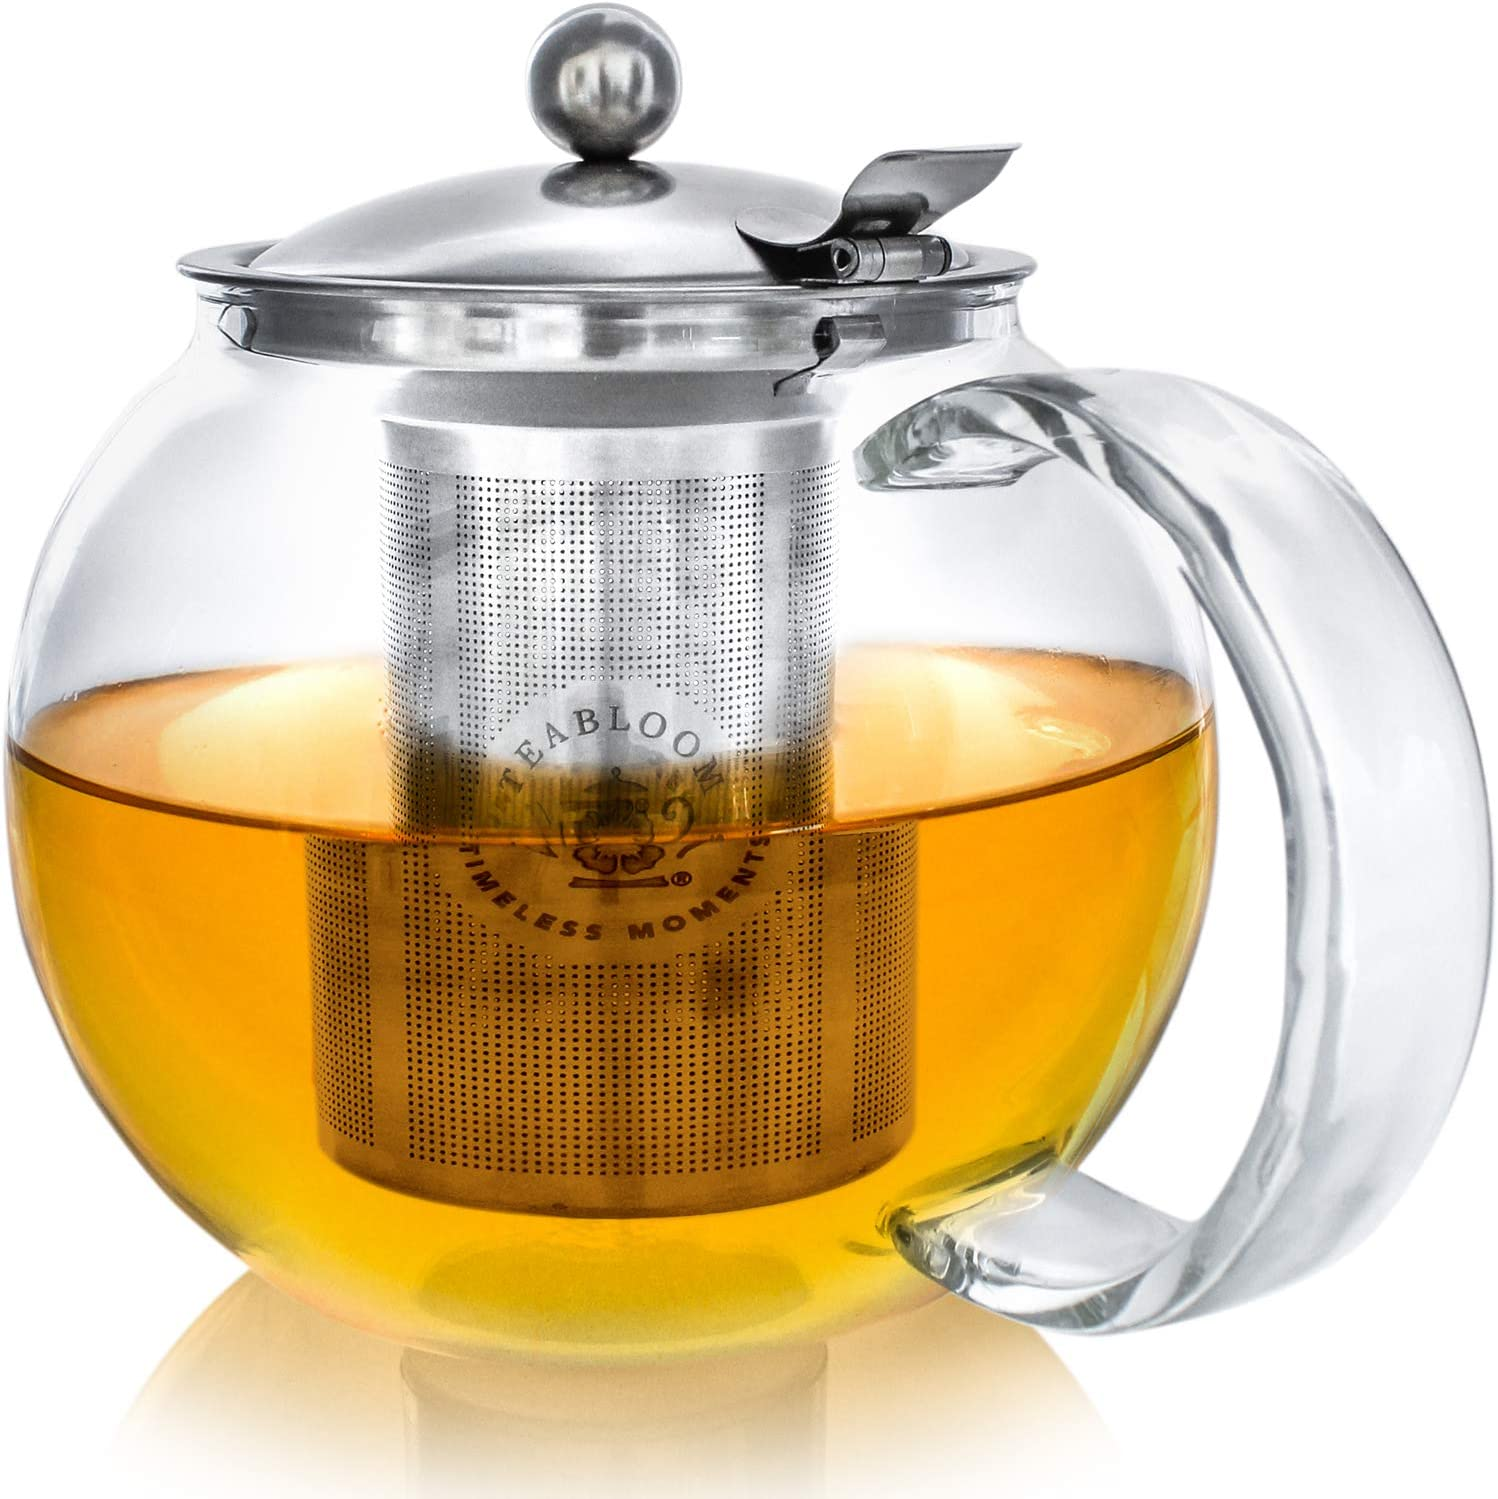 Amazon Com Stovetop Safe Lead Free Glass Teapot Kettle 40 Oz 1 2 L Capacity Removable Stainless Steel Infuser Great For Loose Leaf Tea Blooming Tea Tea Bags Fruit